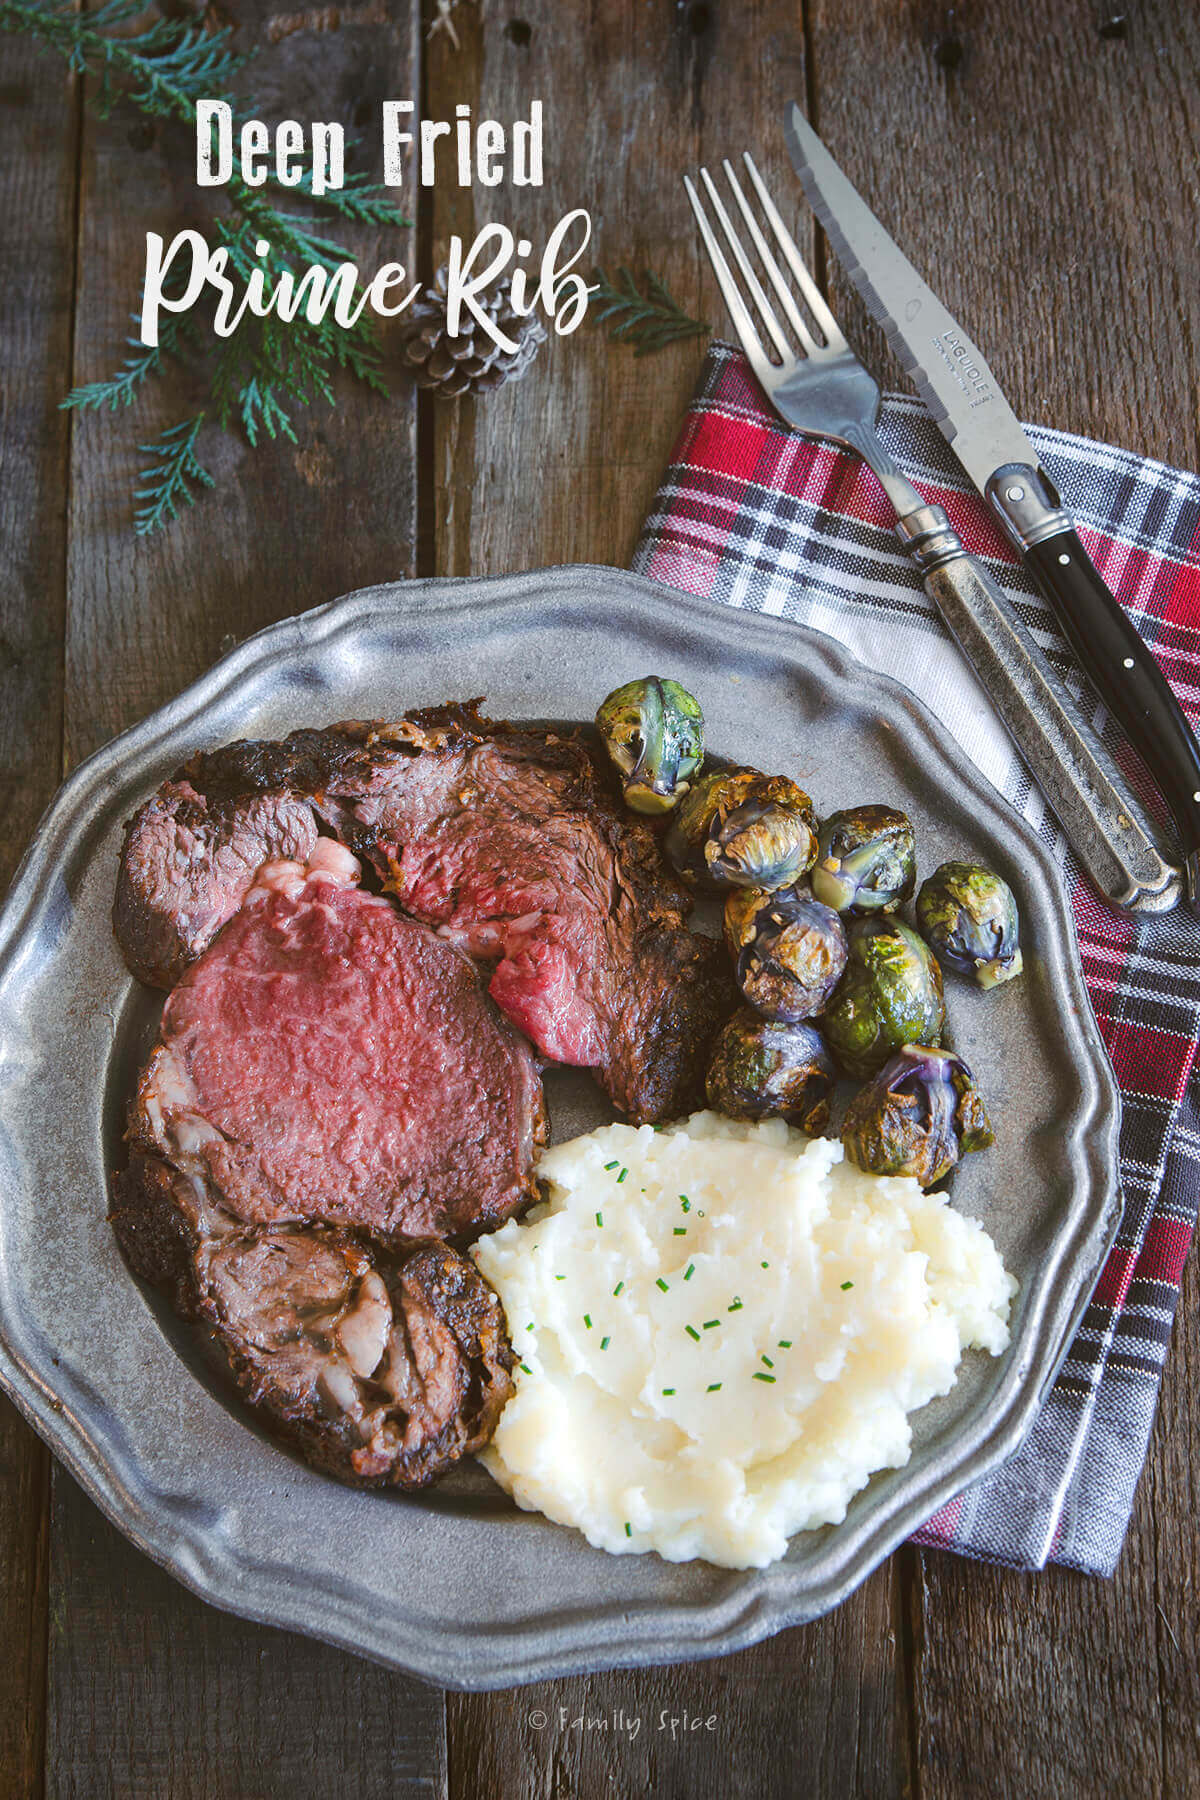 A plate of a slice of deep fried prime rib with mashed potatoes and Brussels sprouts by FamilySpice.com